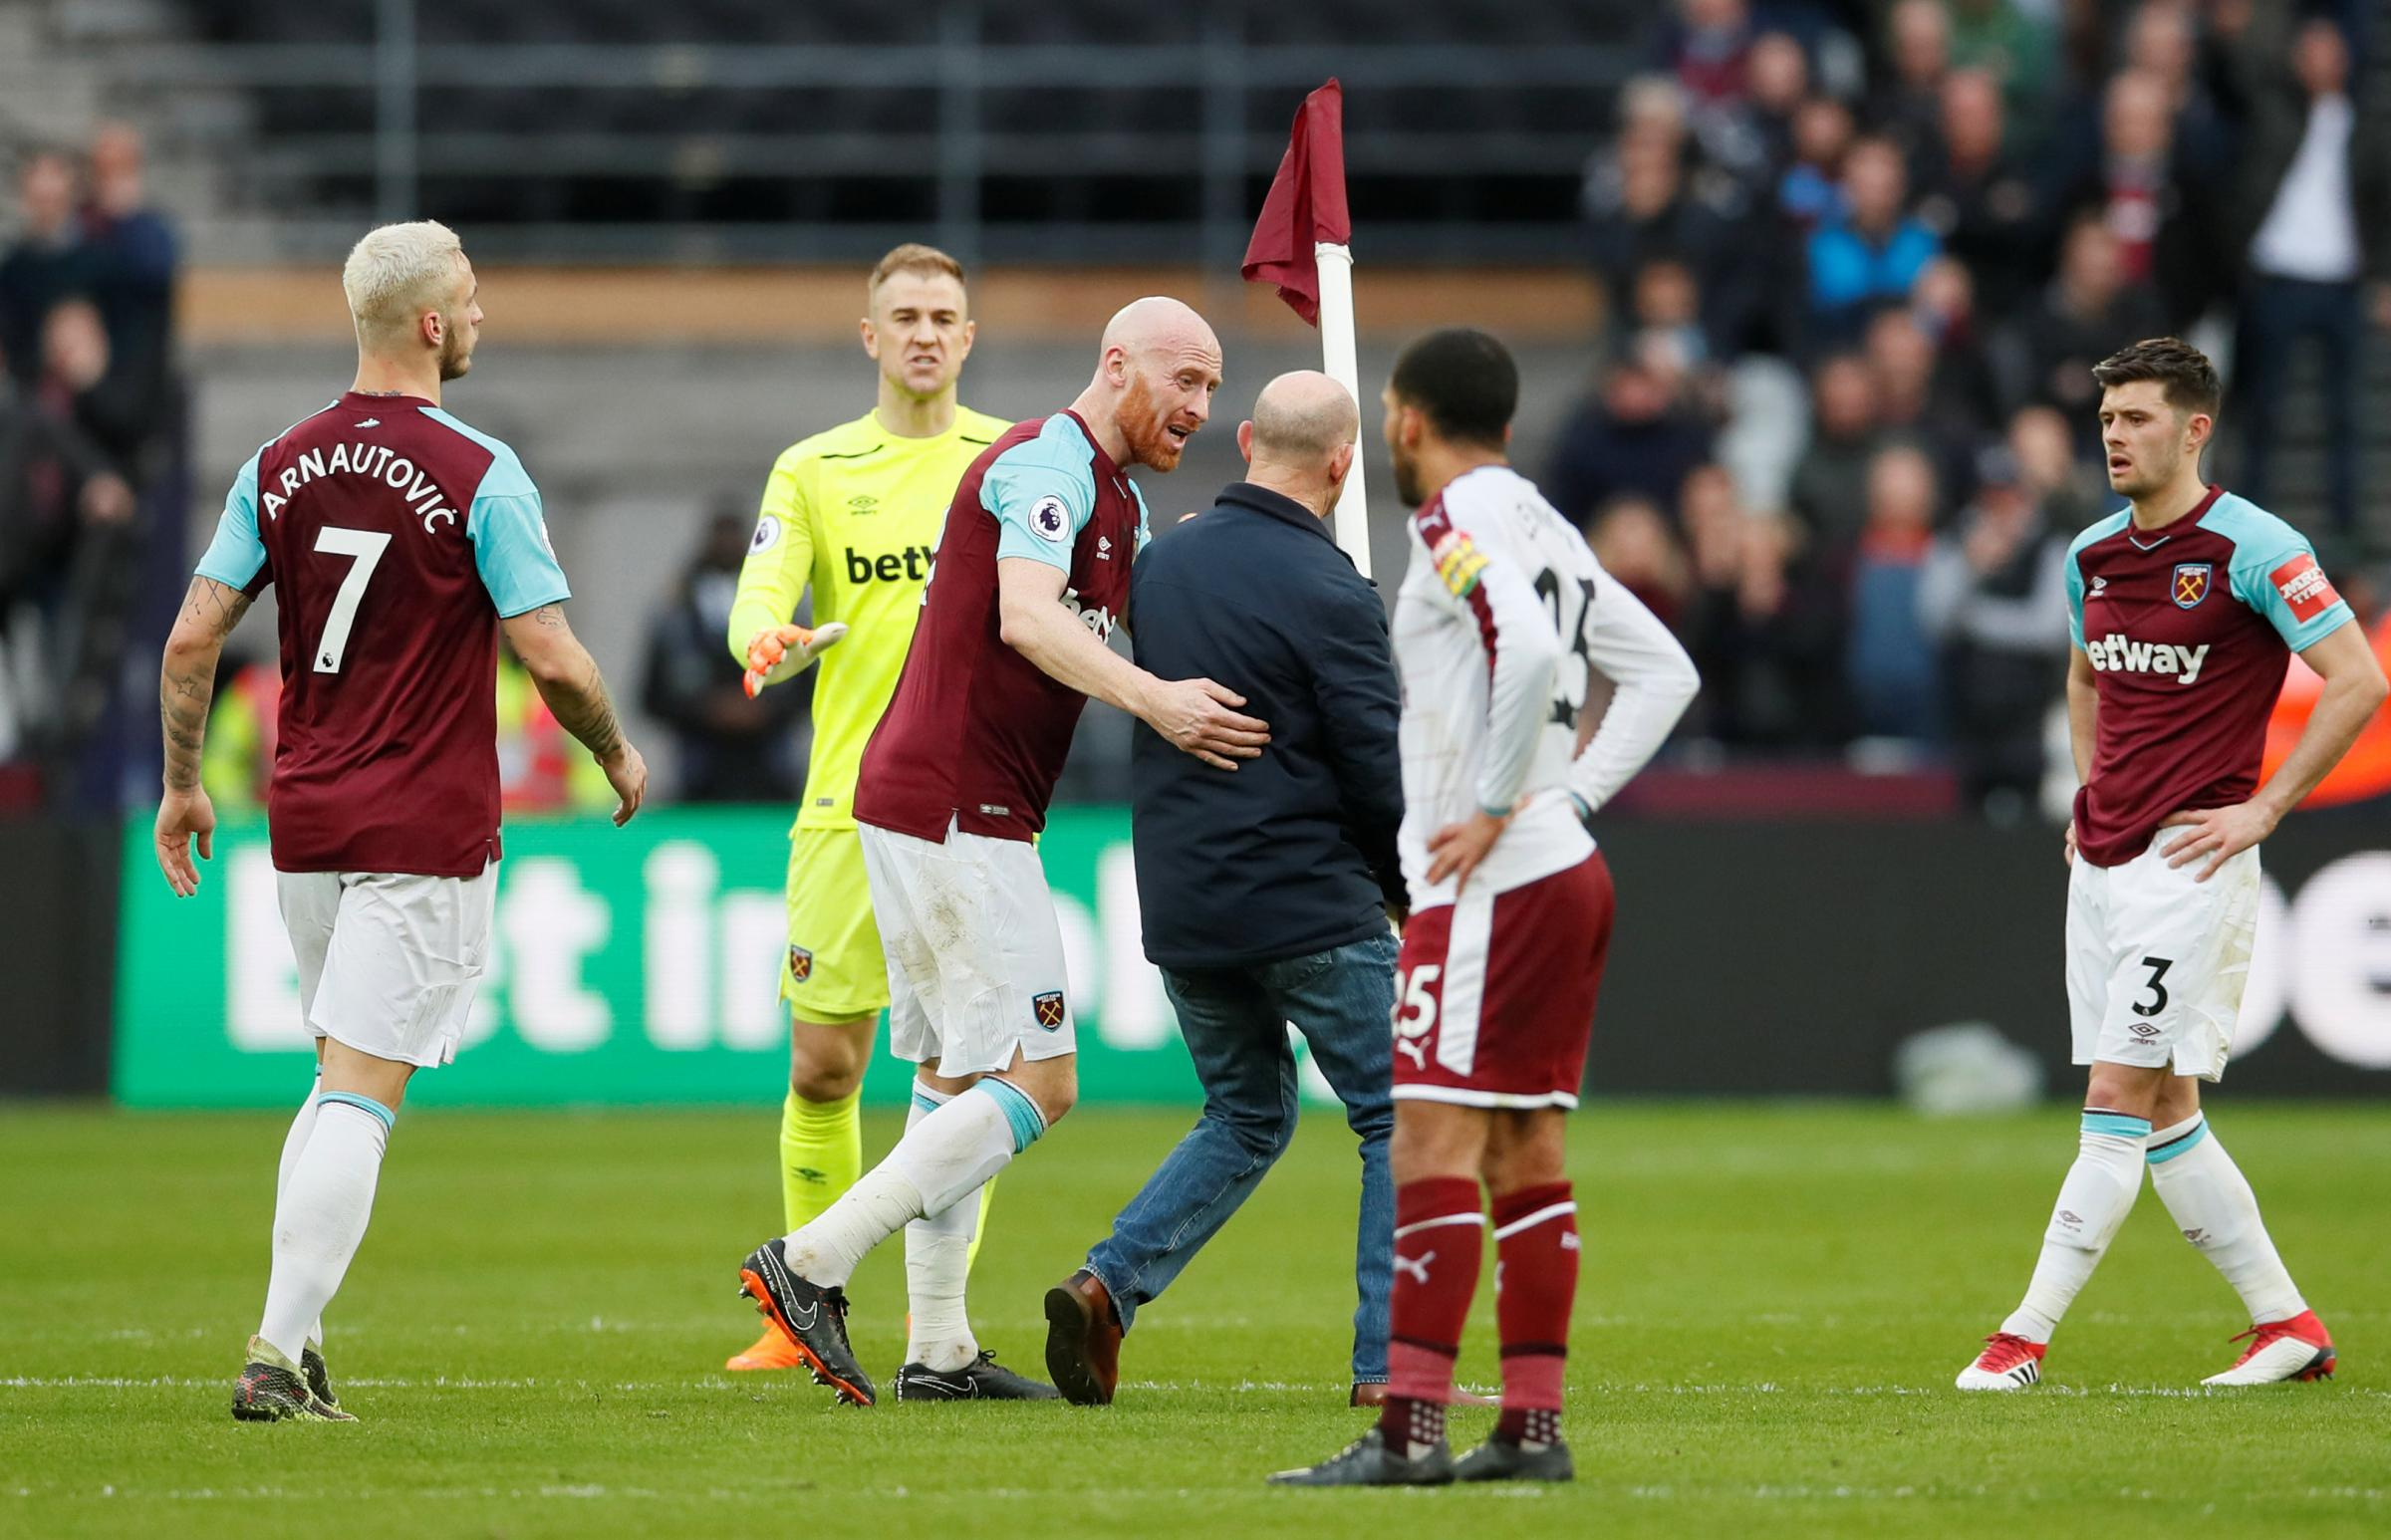 Former West Ham fan James Collins confronts a fan during the trouble. Picture: Action Images